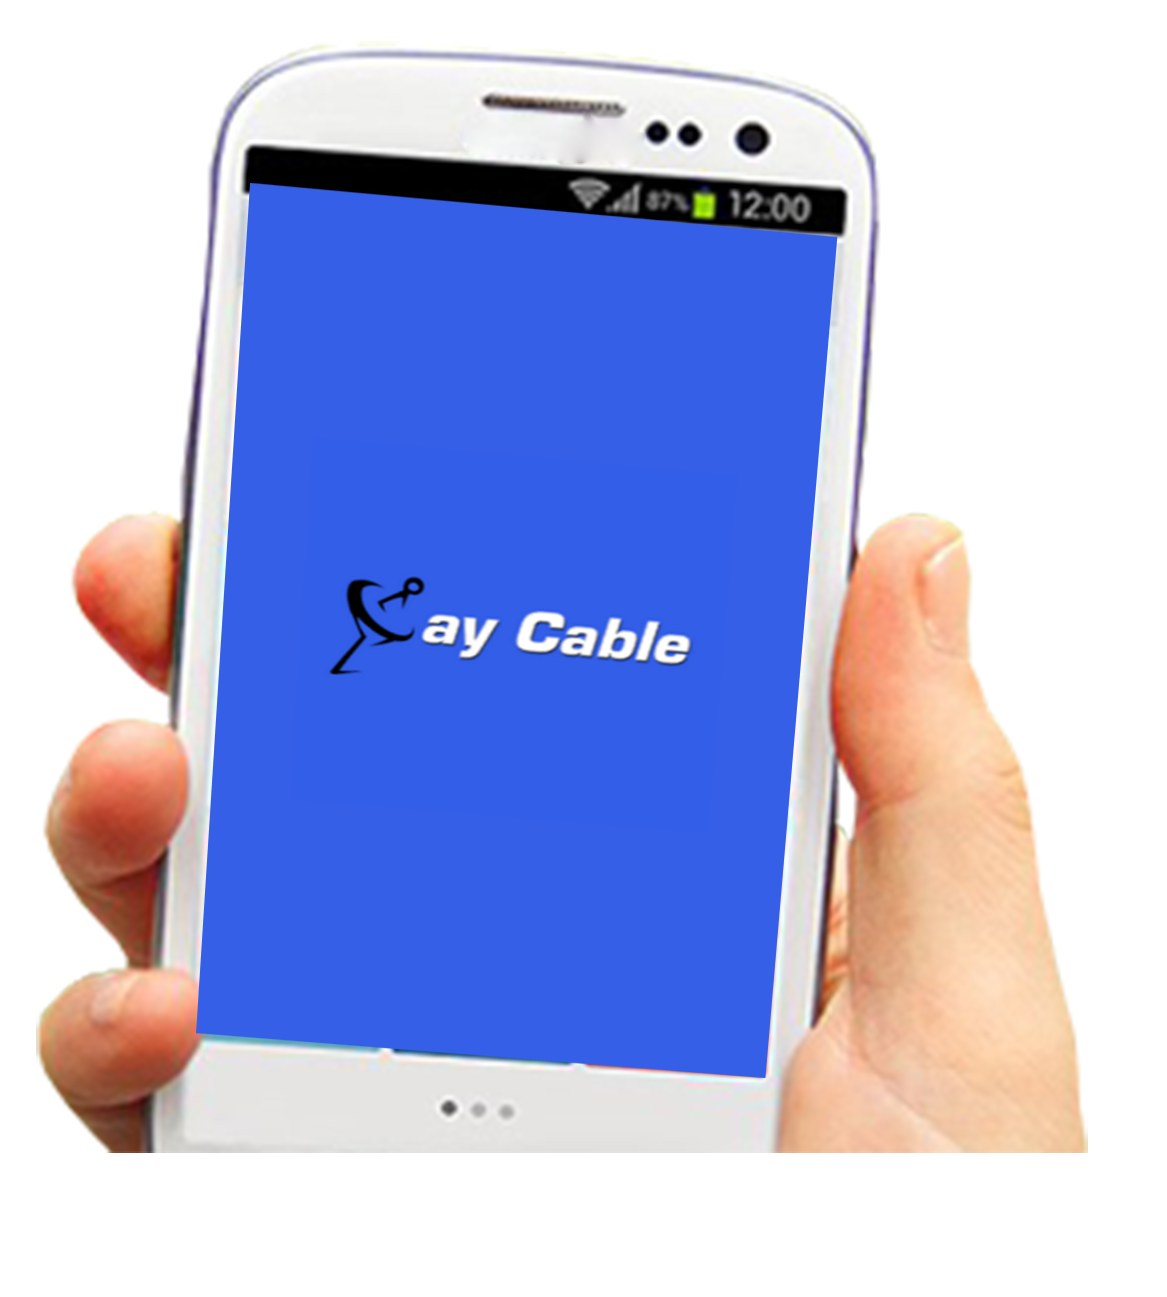 Paycable